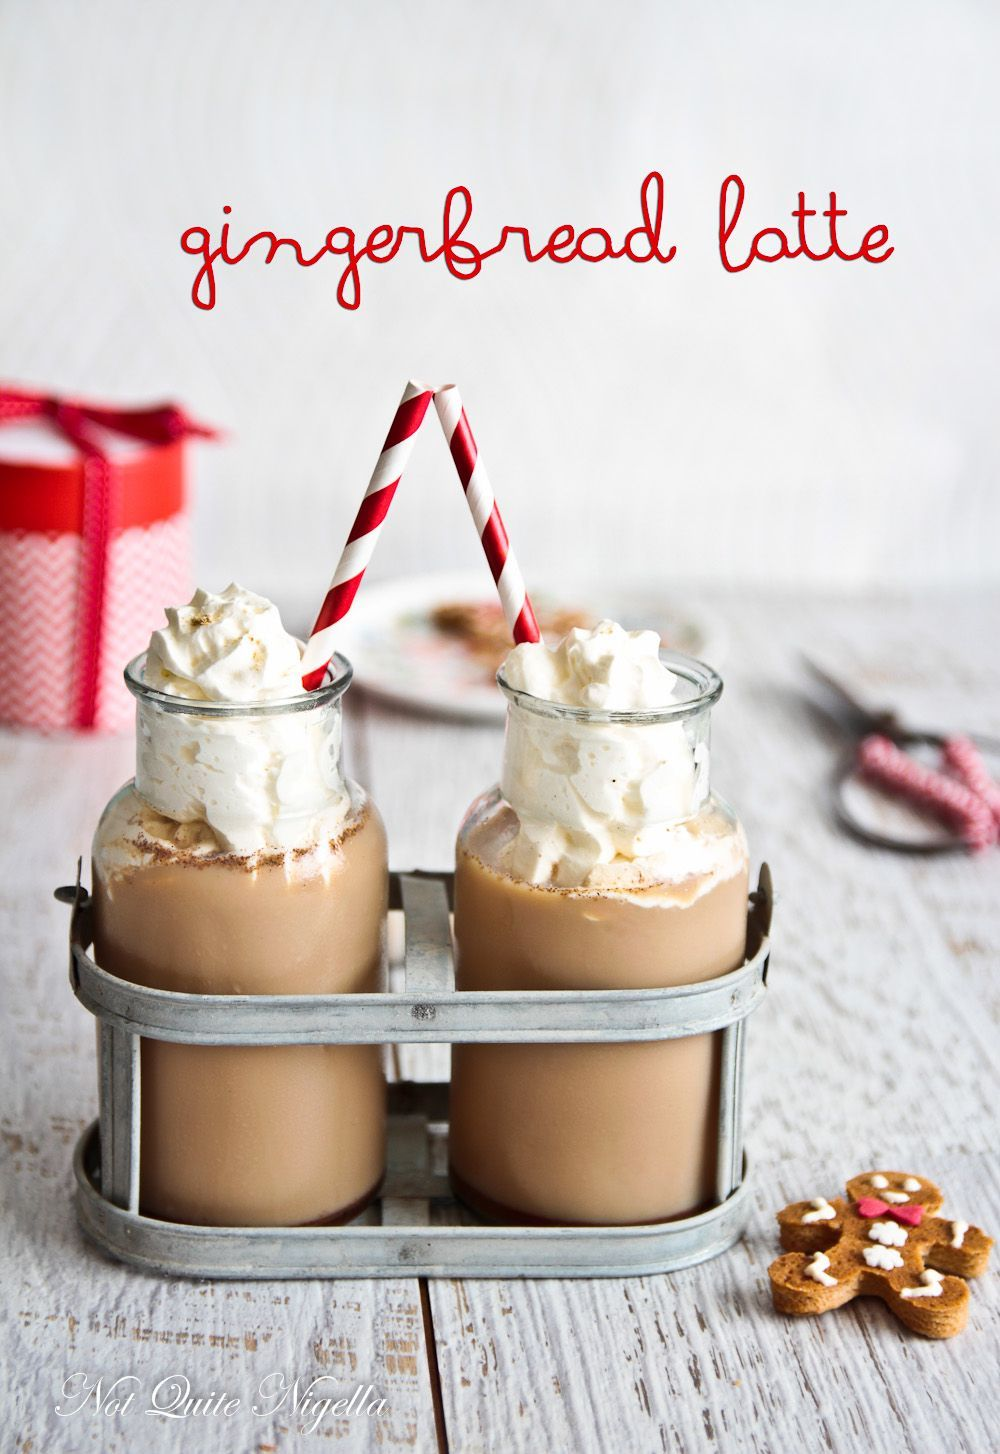 Gingerbread Latte Recipe Gingerbread latte, Coffee